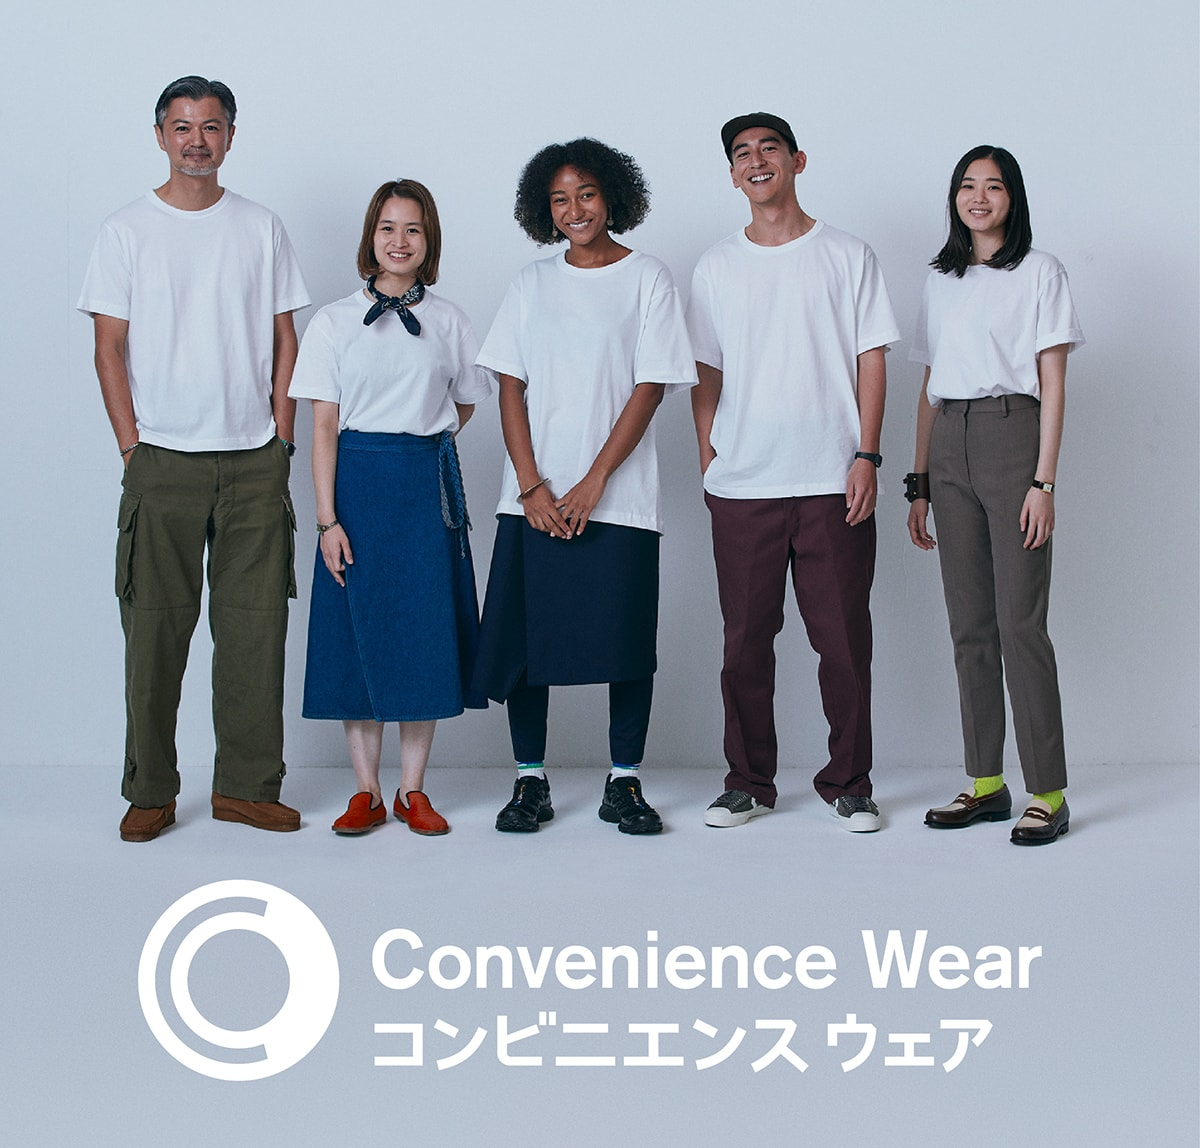 FamilyMart Convenience Wear - 5 people in white shirts